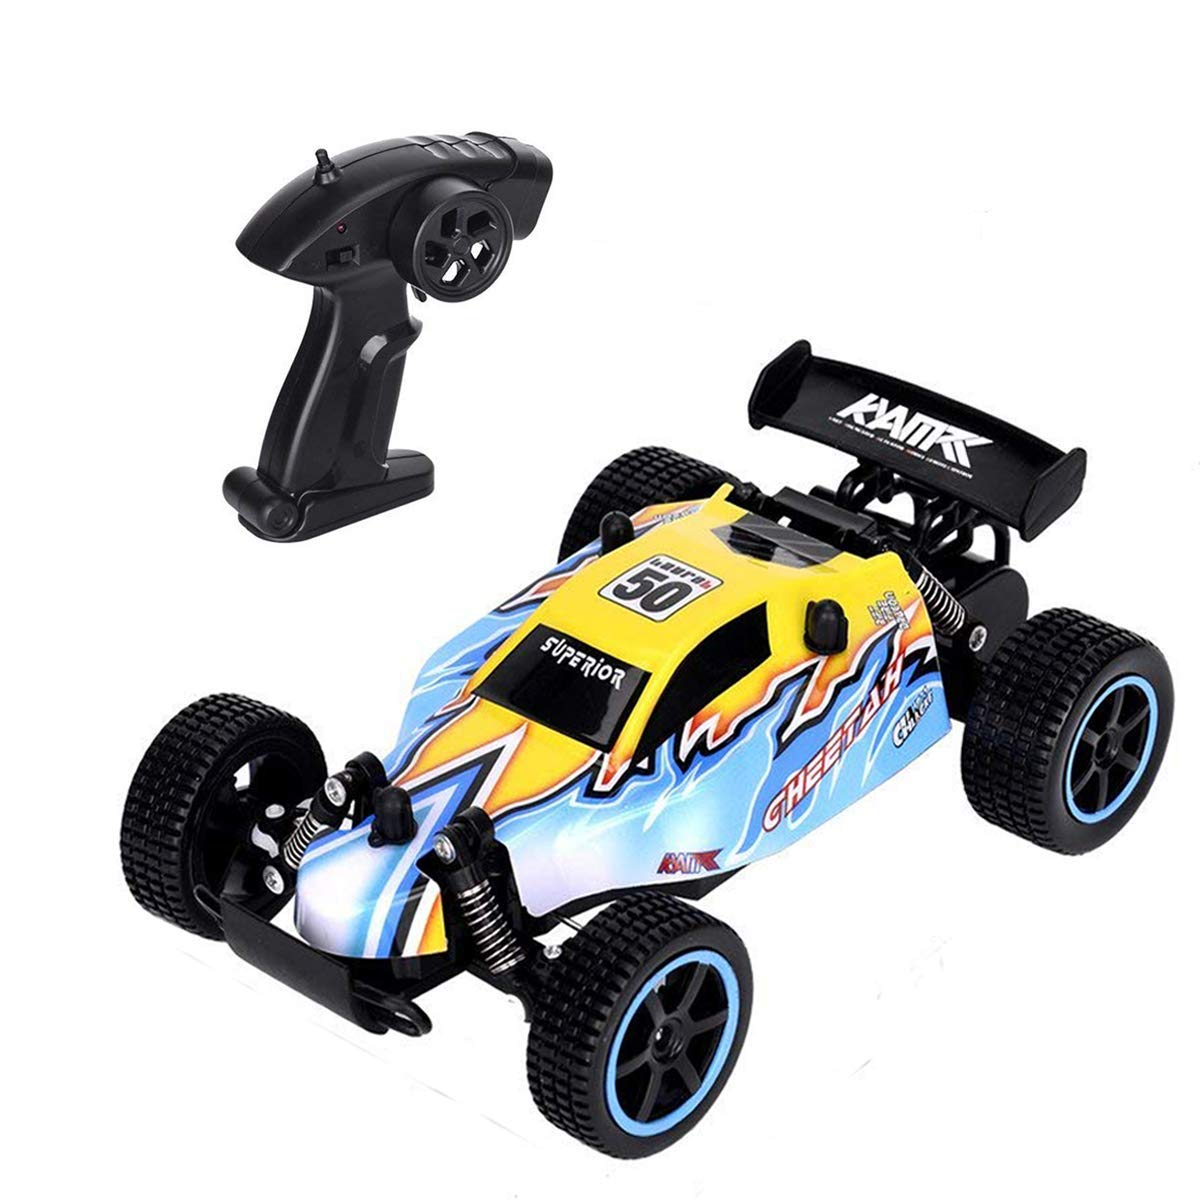 Vinciph RC Car 2WD Remote Control Car,RC Truck 1:20 Scale, 2.4 GHz Radio Controlled Vehicle High Speed, Electric Race Car Fast Racing Drifting Buggy Hoppy Car for Kids